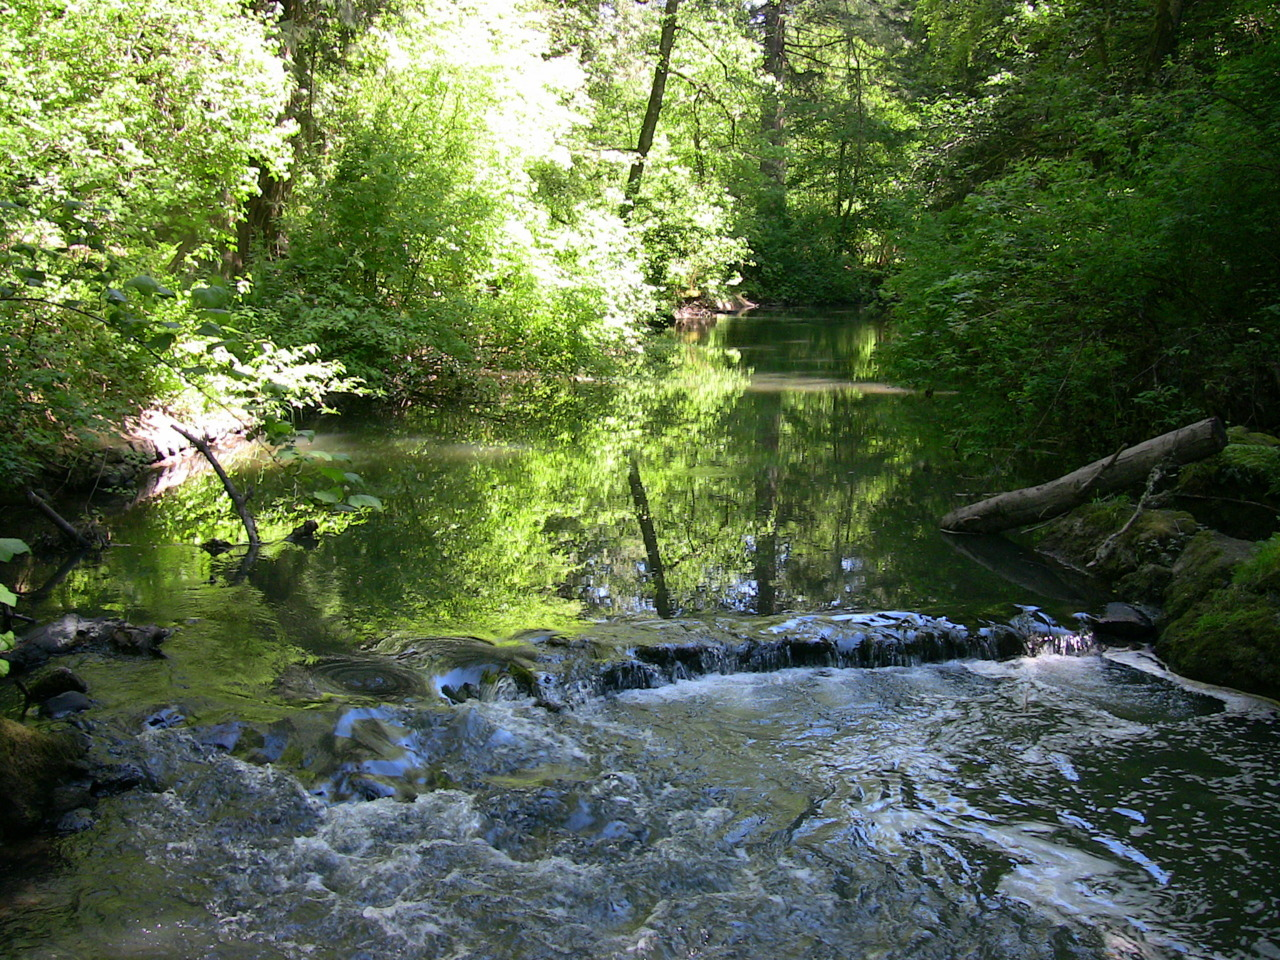 Johnson Creek flowing through the Leach Botanical Garden.